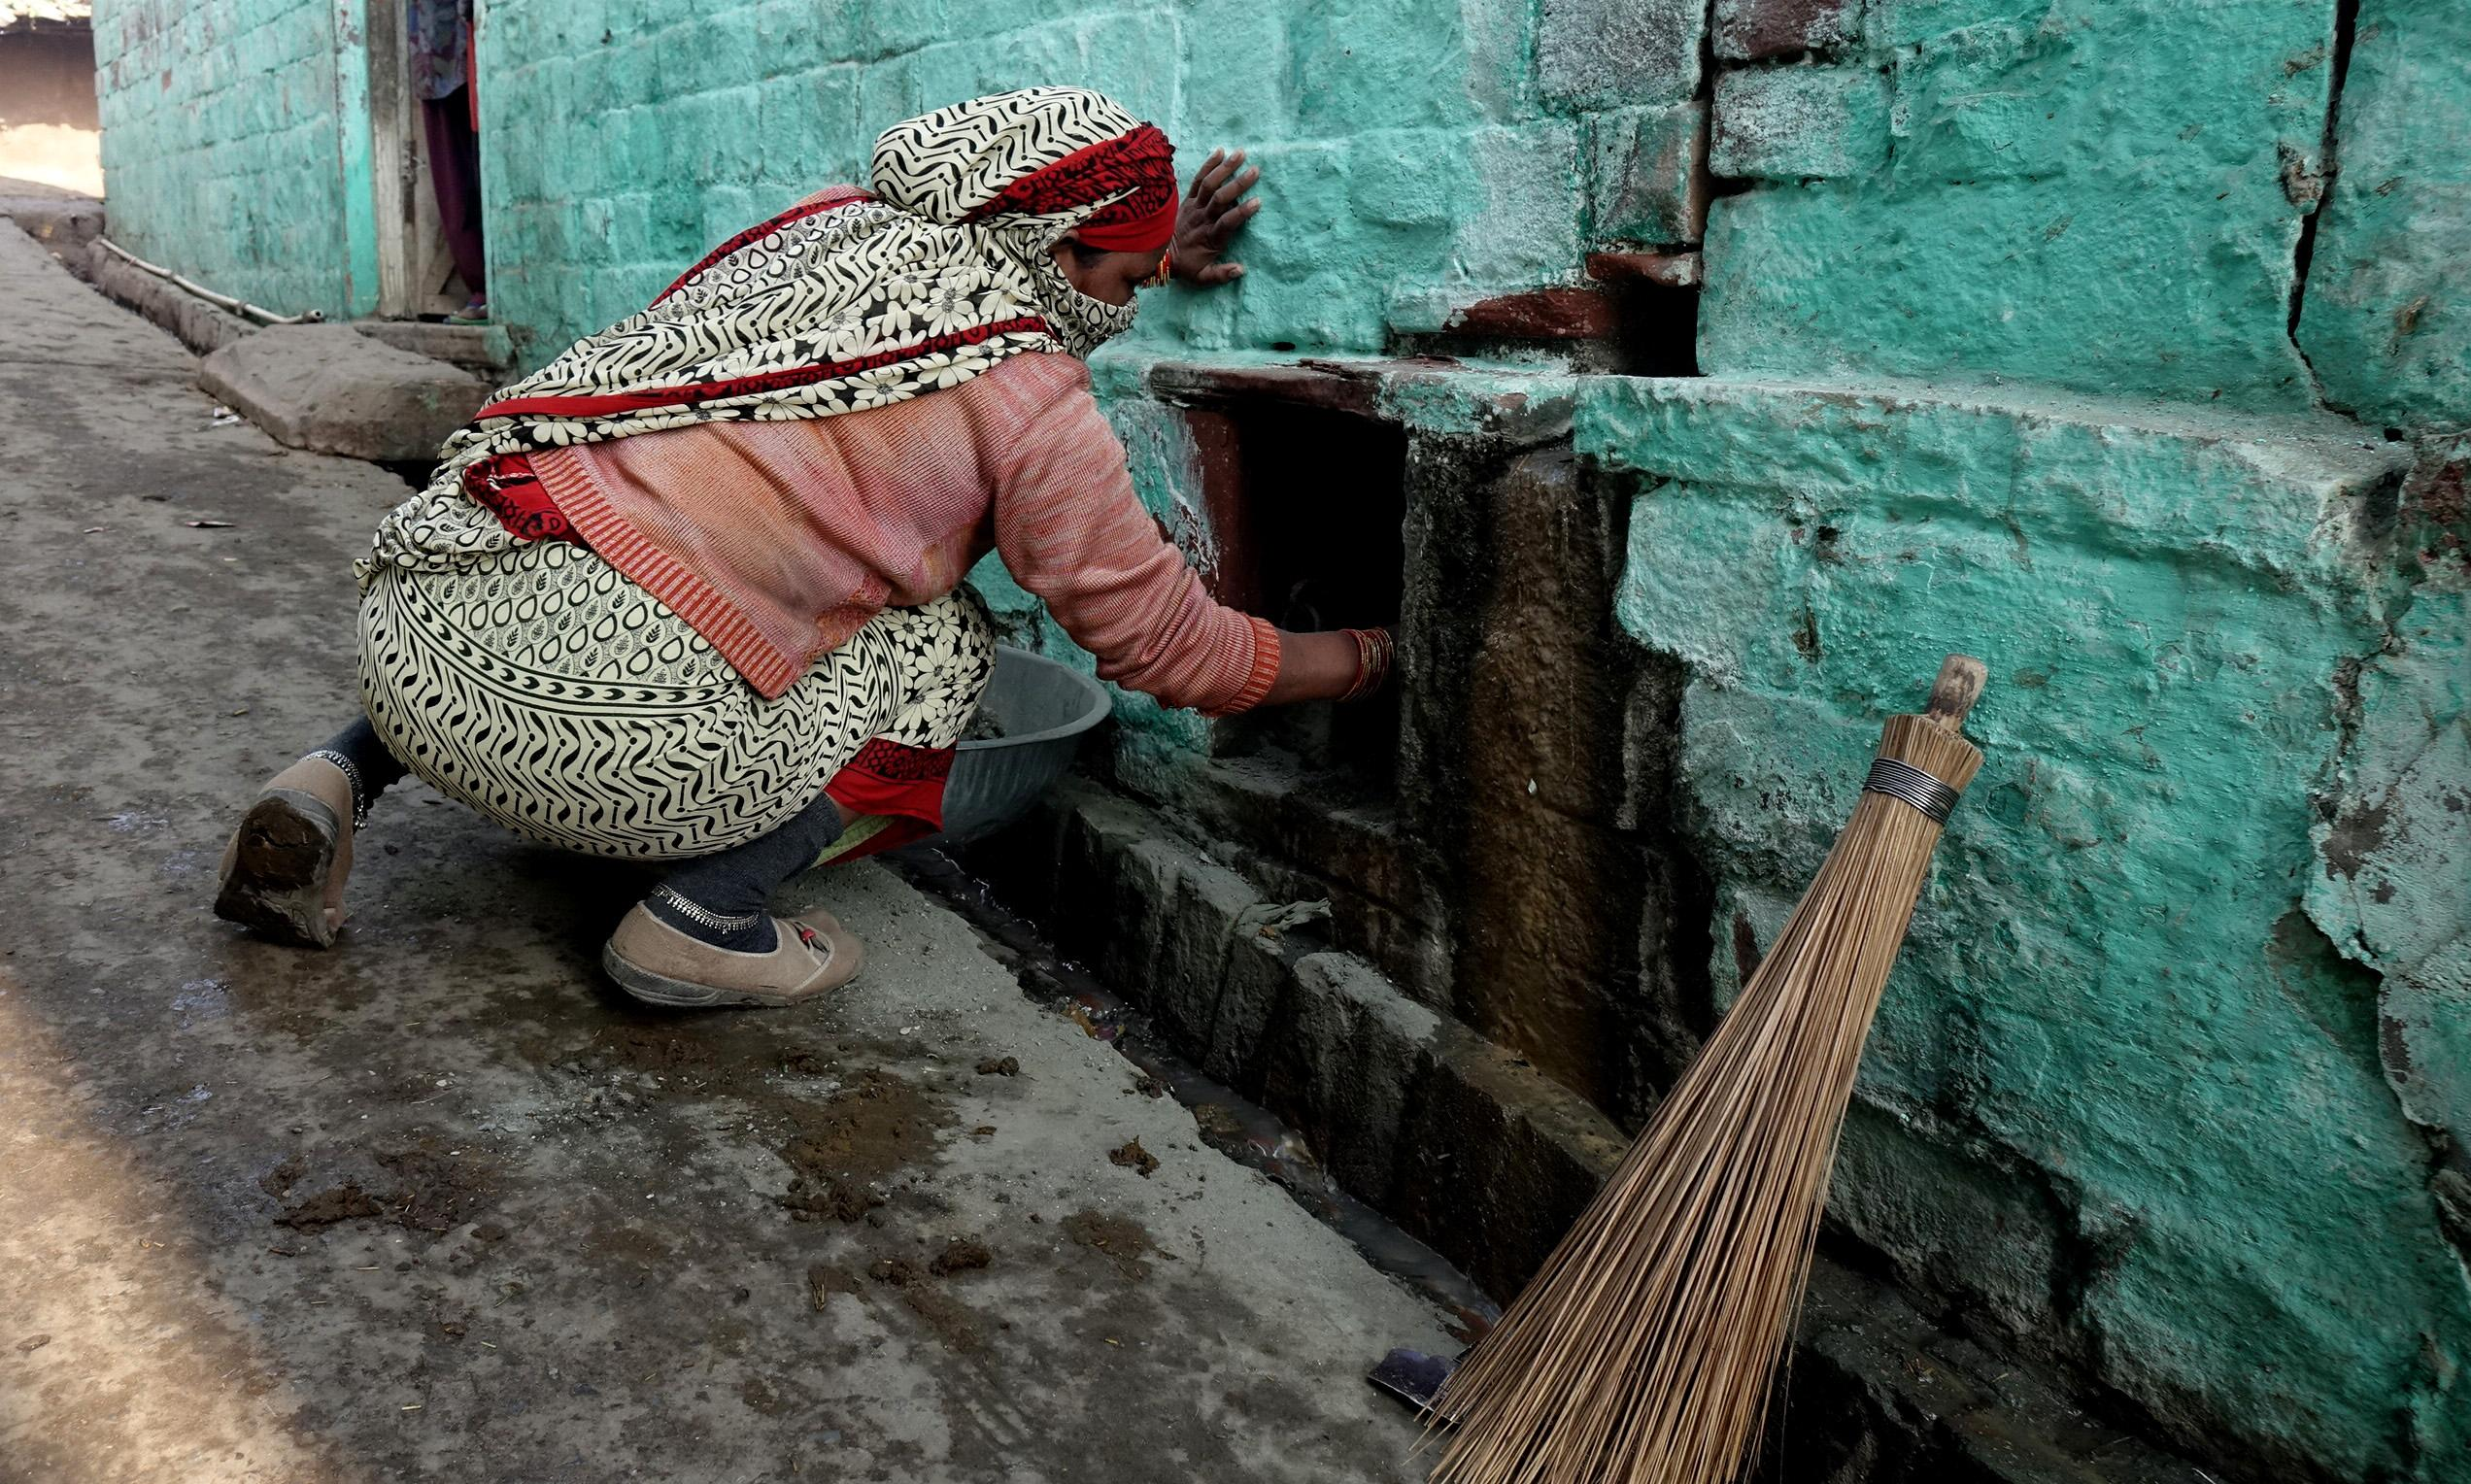 'I'm born to do this': Condemned by caste, India's sewer cleaners risk death daily